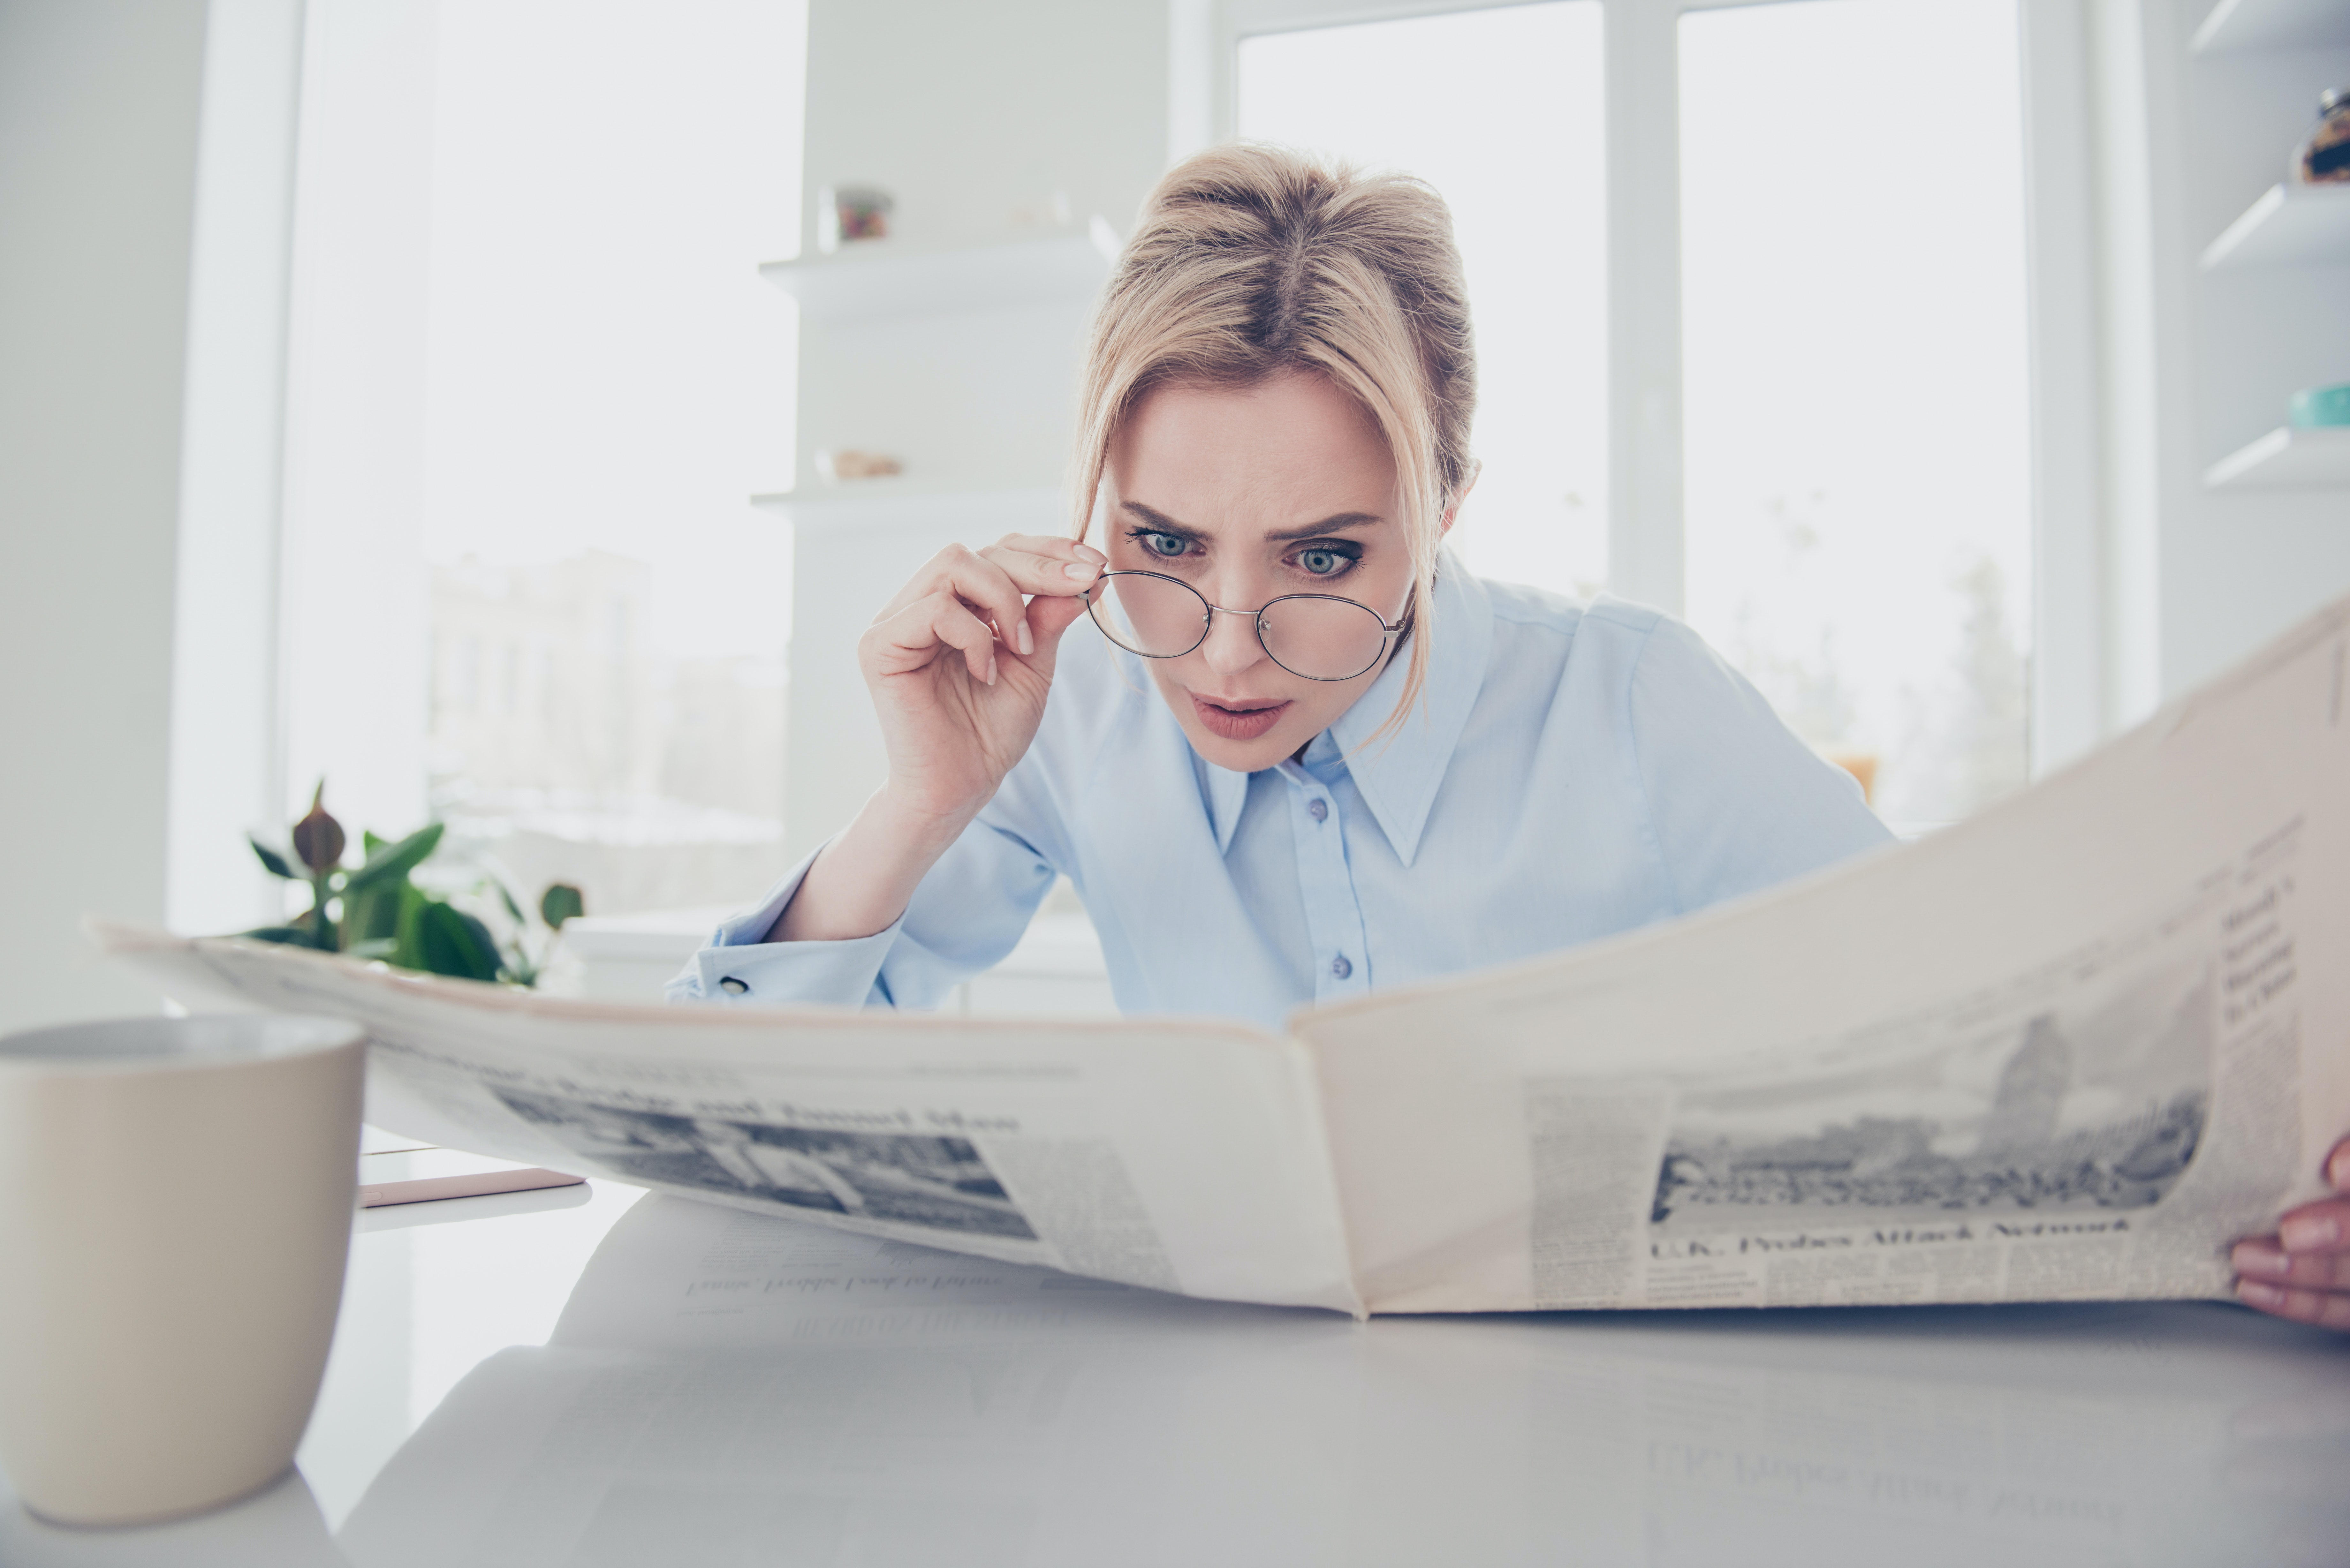 How to make health news interesting — without overselling the claims